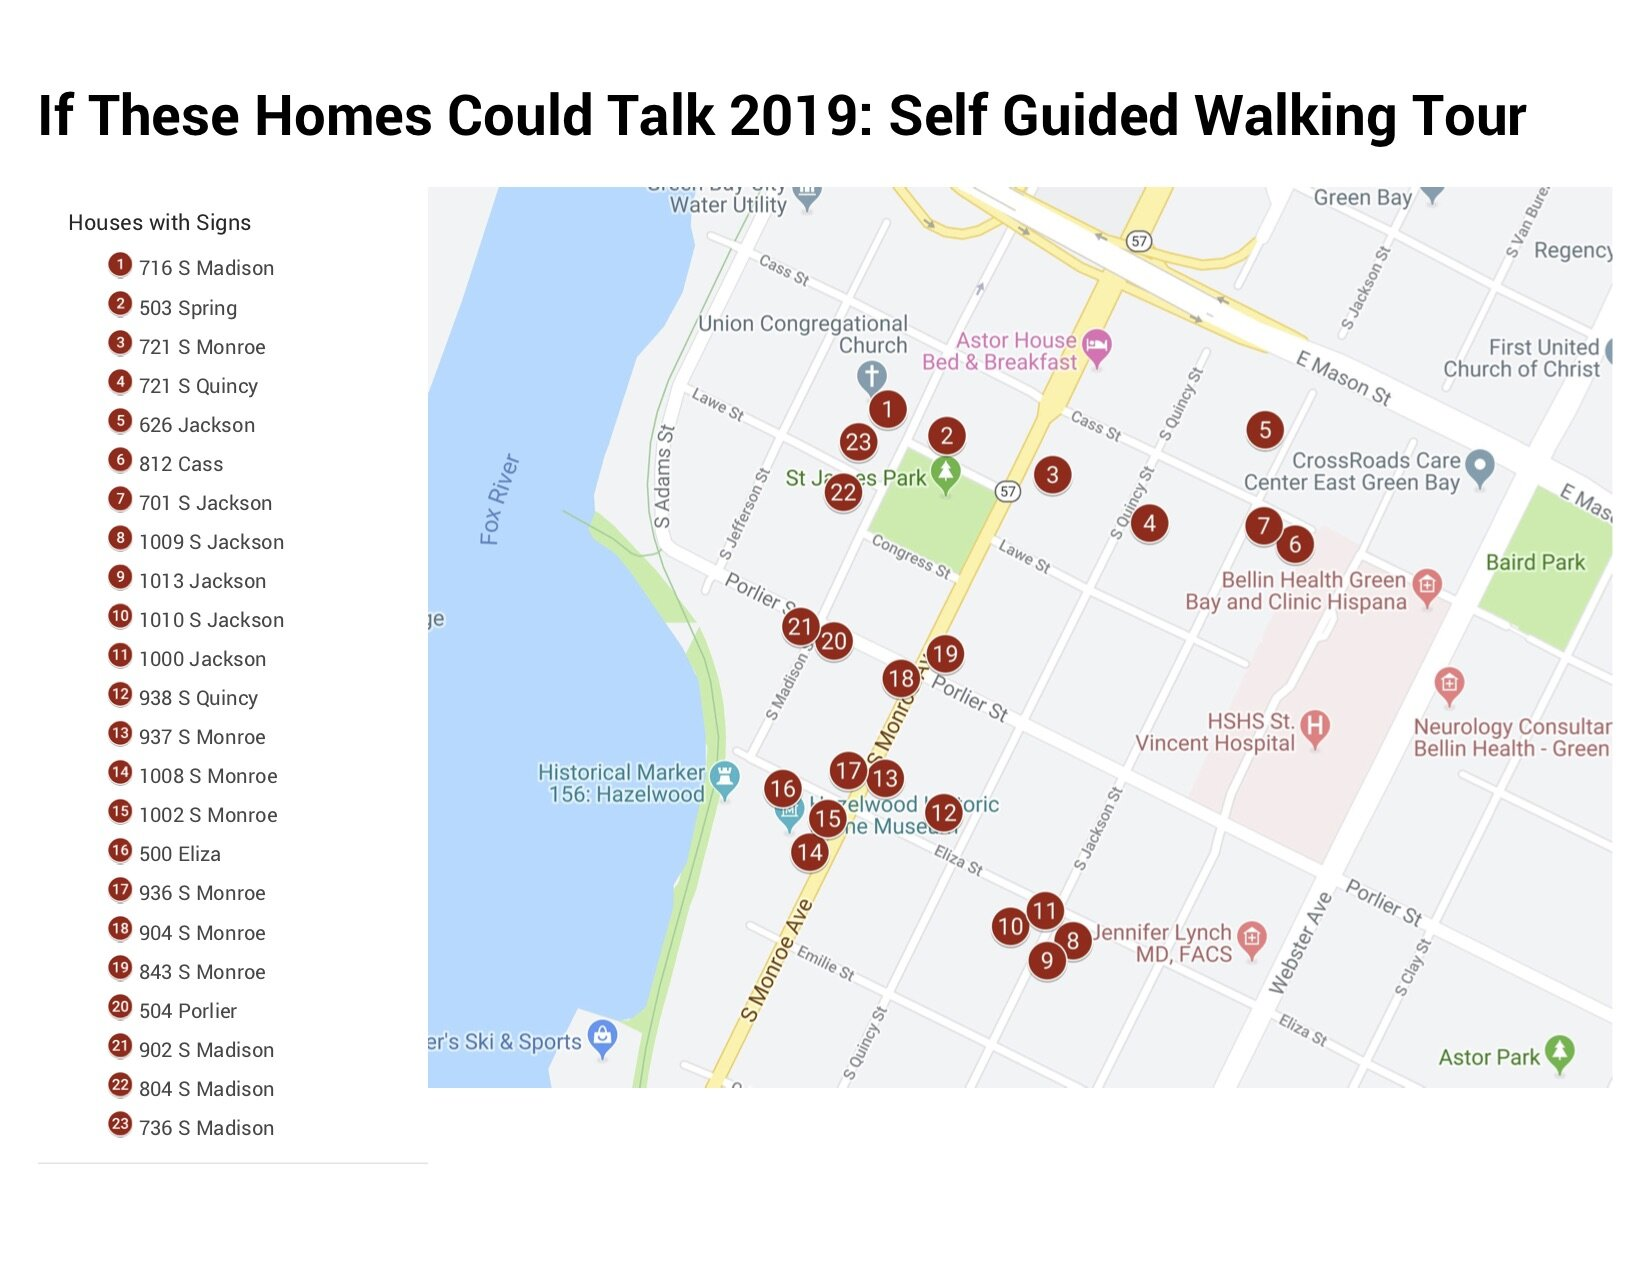 If These Homes Could Talk- Self Guided Walking Tour 2019.jpg